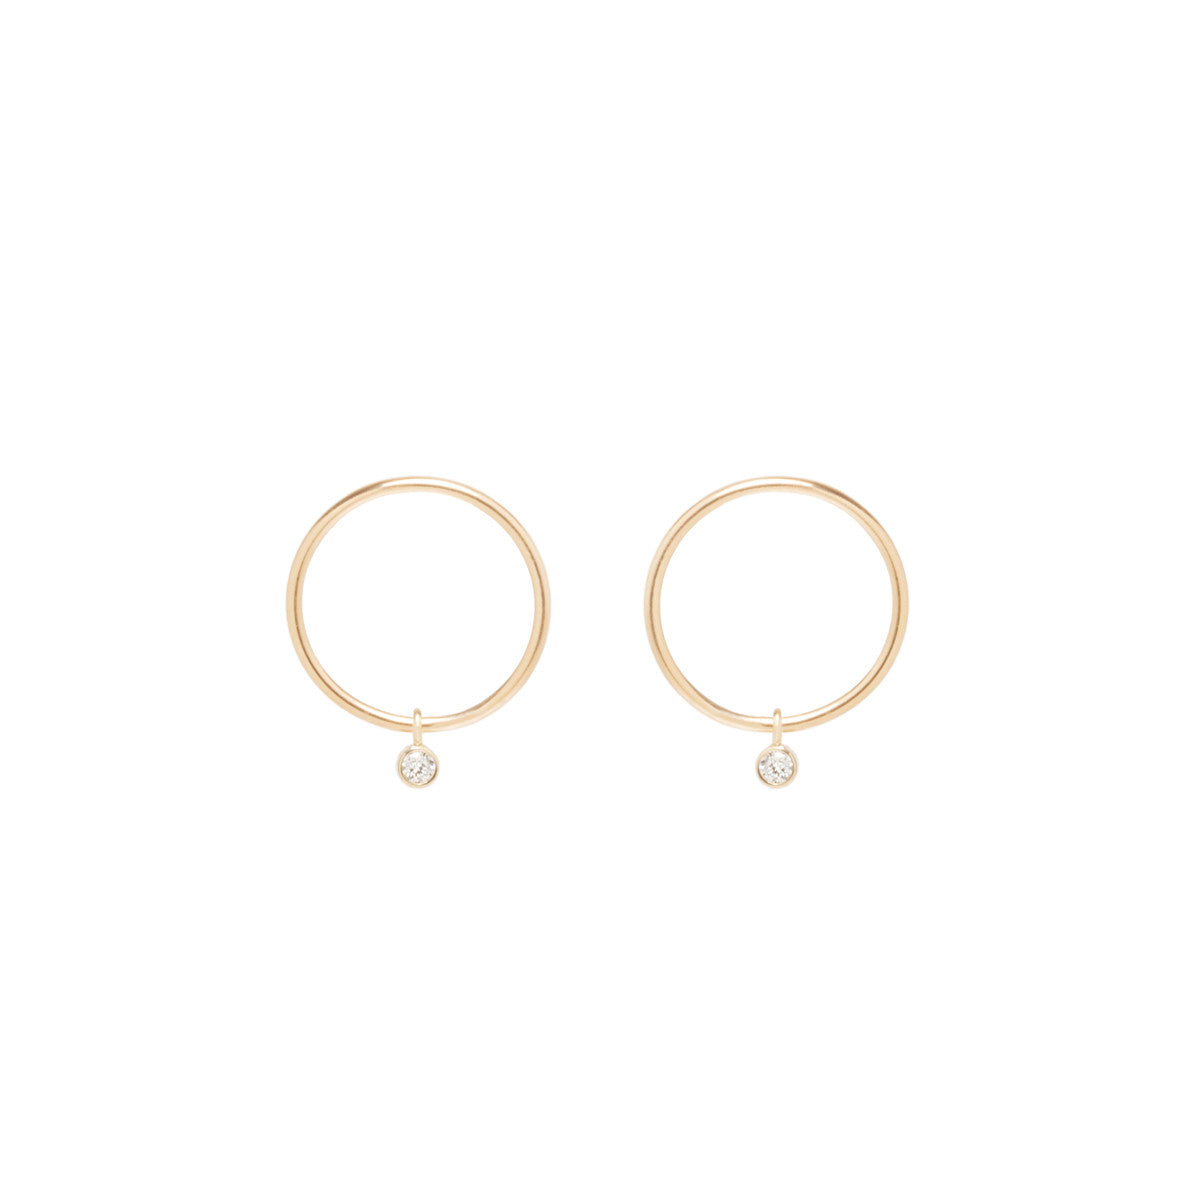 Zoë Chicco 14kt Yellow Gold Dangling Bezel Diamond Small Circle Stud Earrings